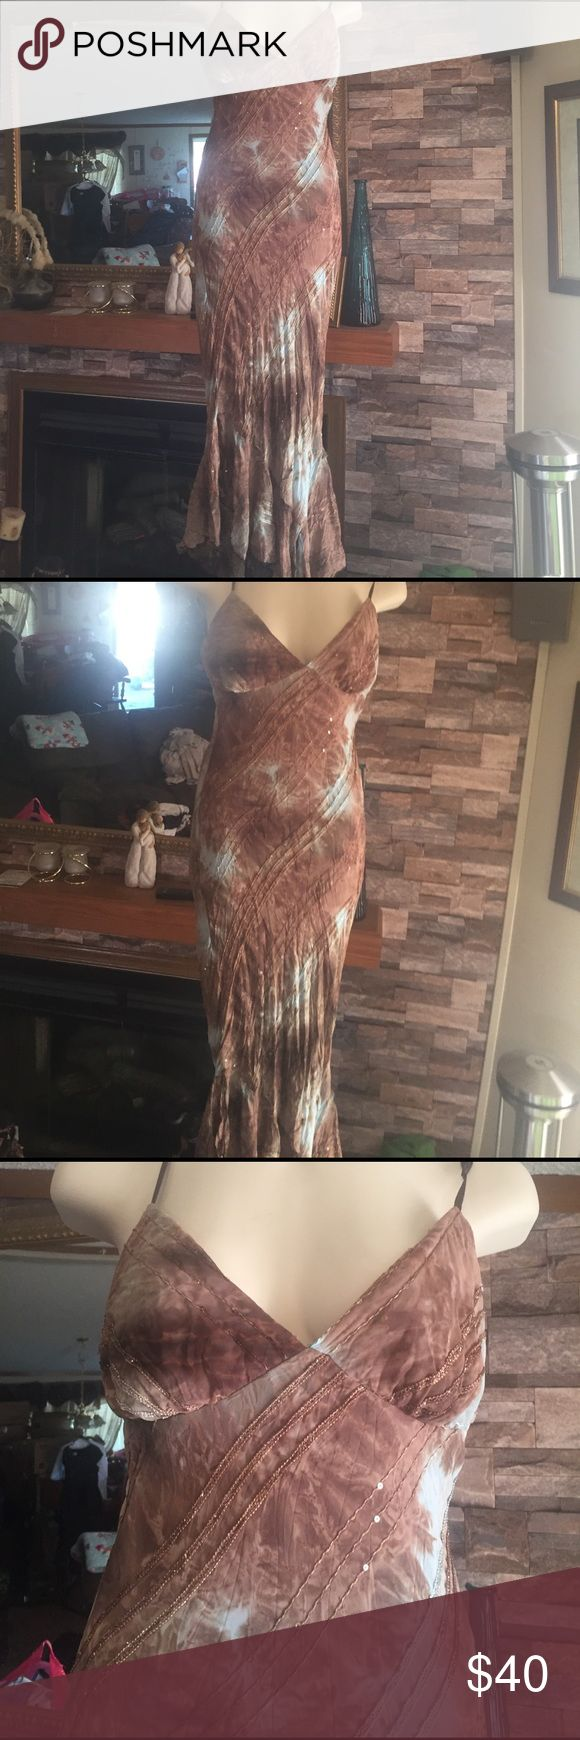 Brown and baby blue maxi dress GiGi size medium brown and baby blue sequinned tye dye maxi sun dress. Flowy at bottom with small slits GiGi New York Dresses Maxi